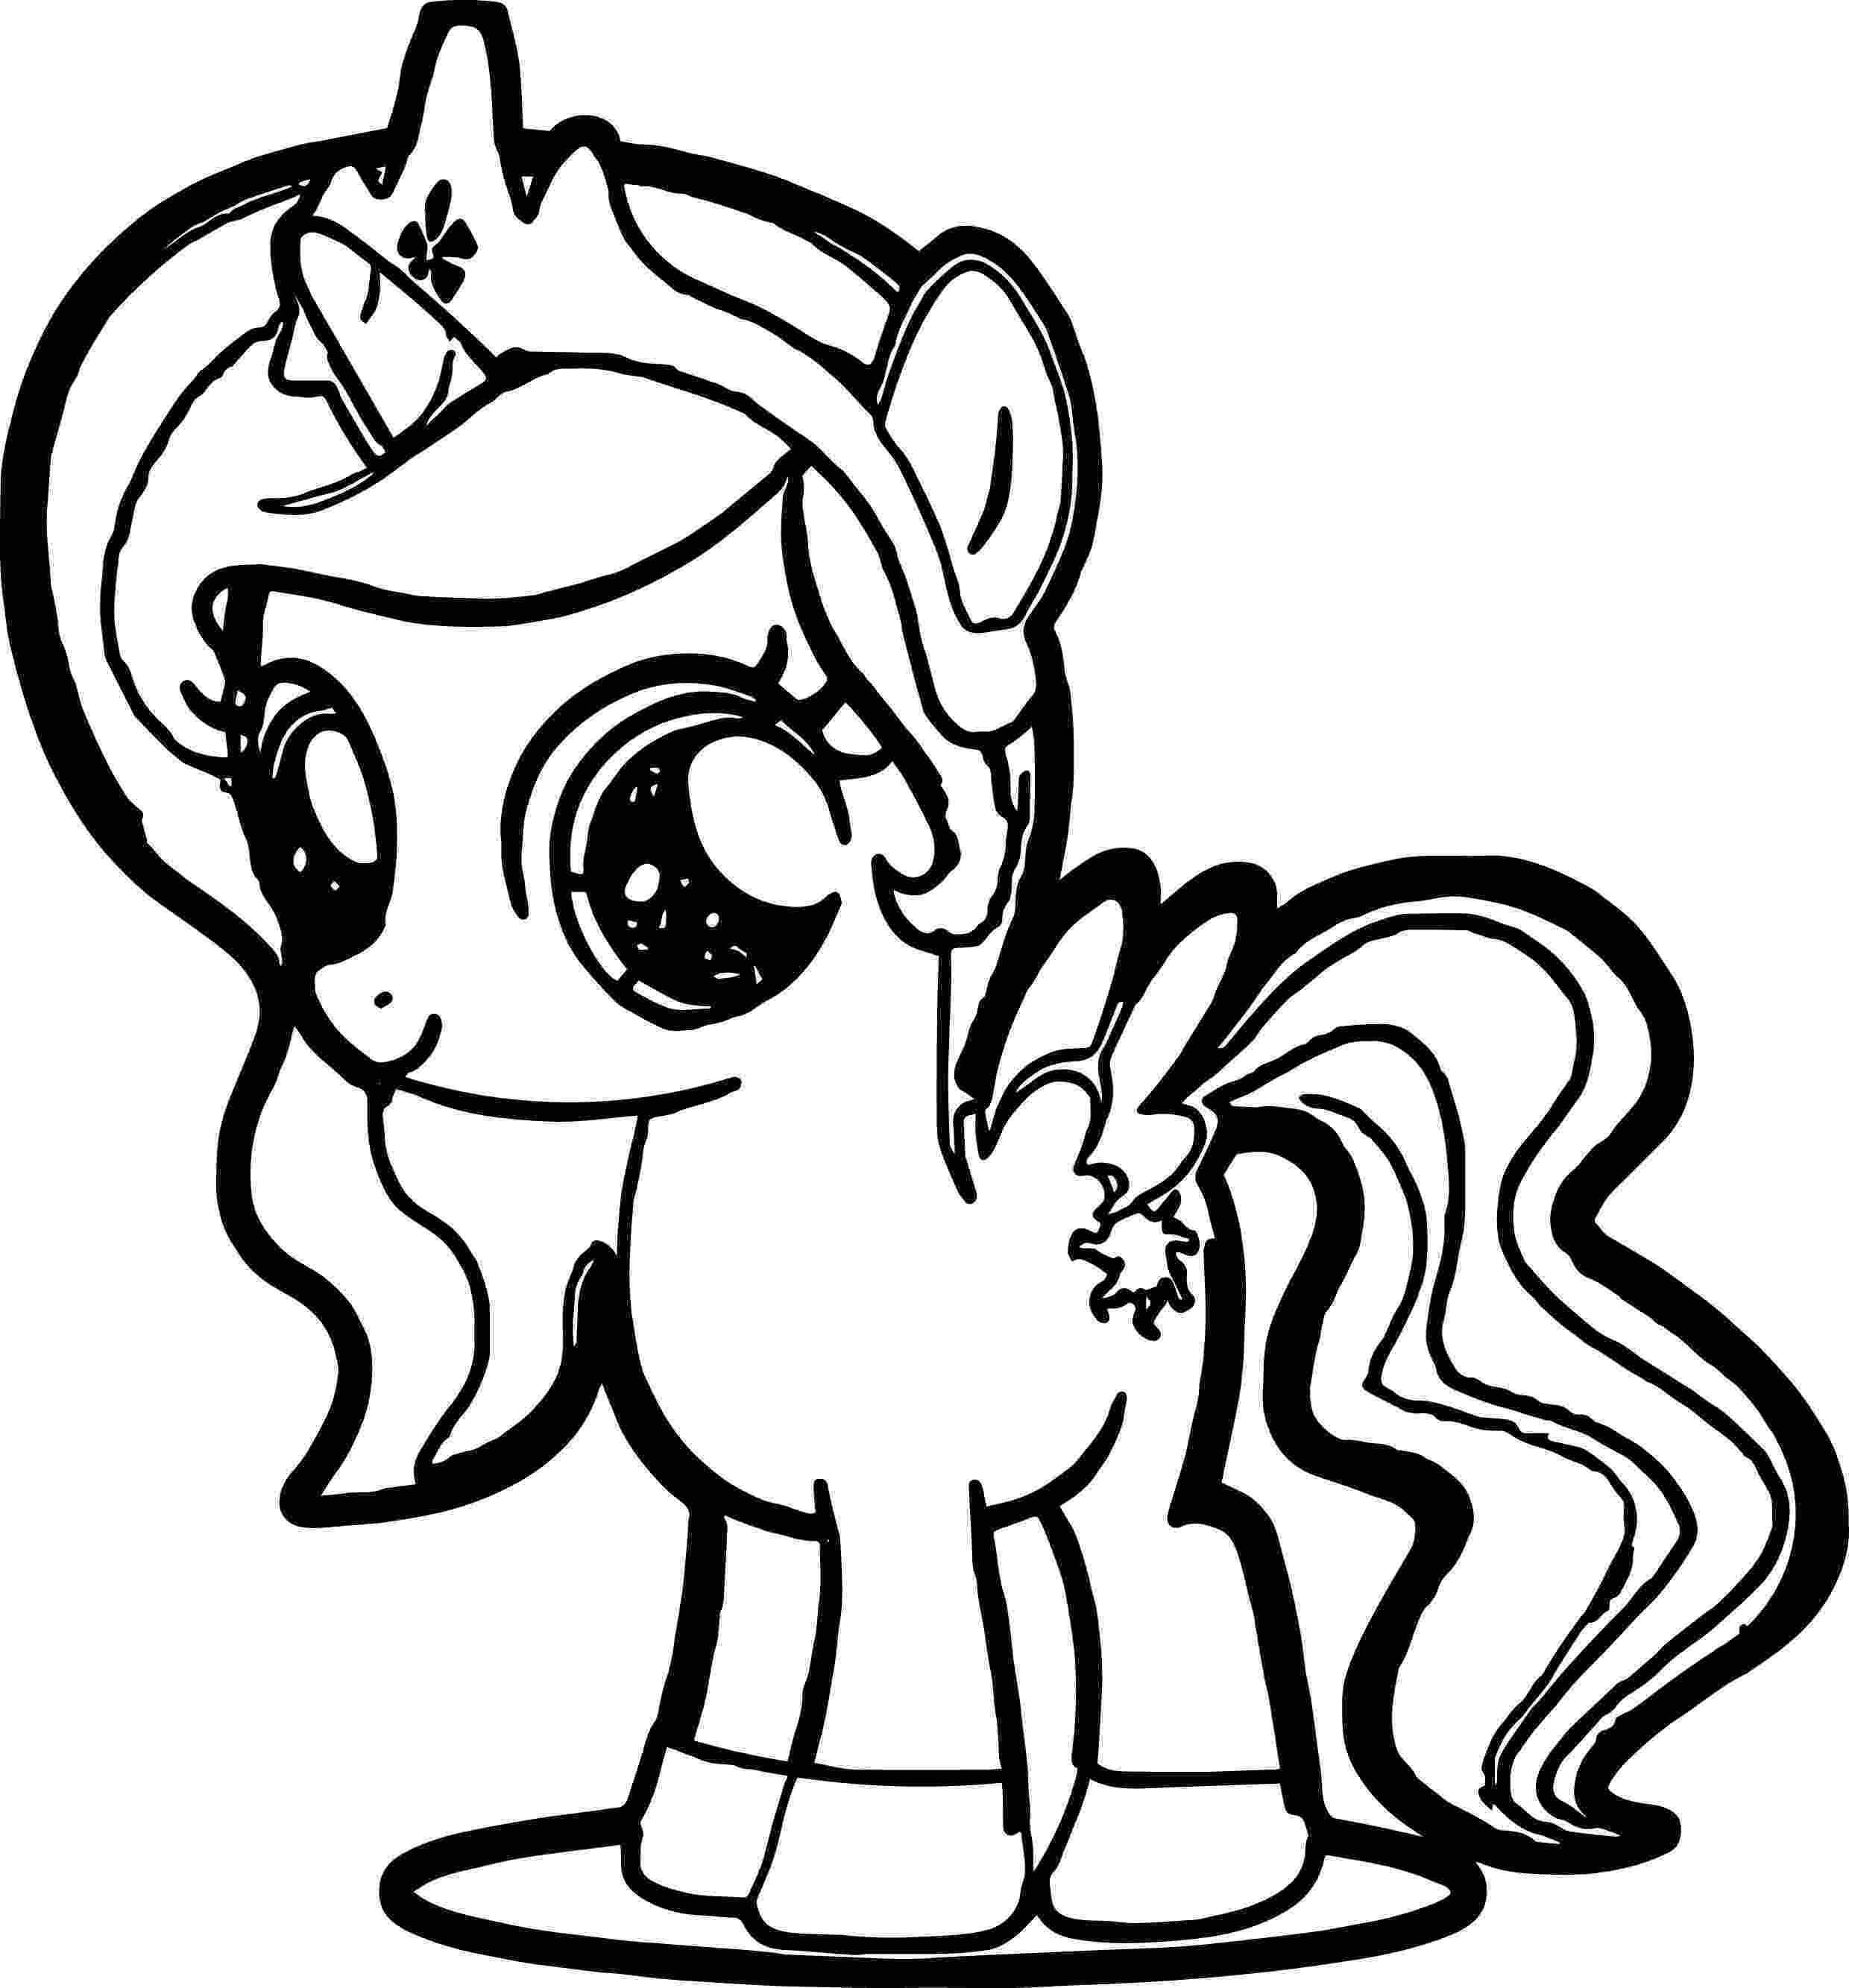 my little pony color sheets my little pony christmas coloring pages to download and my sheets color pony little